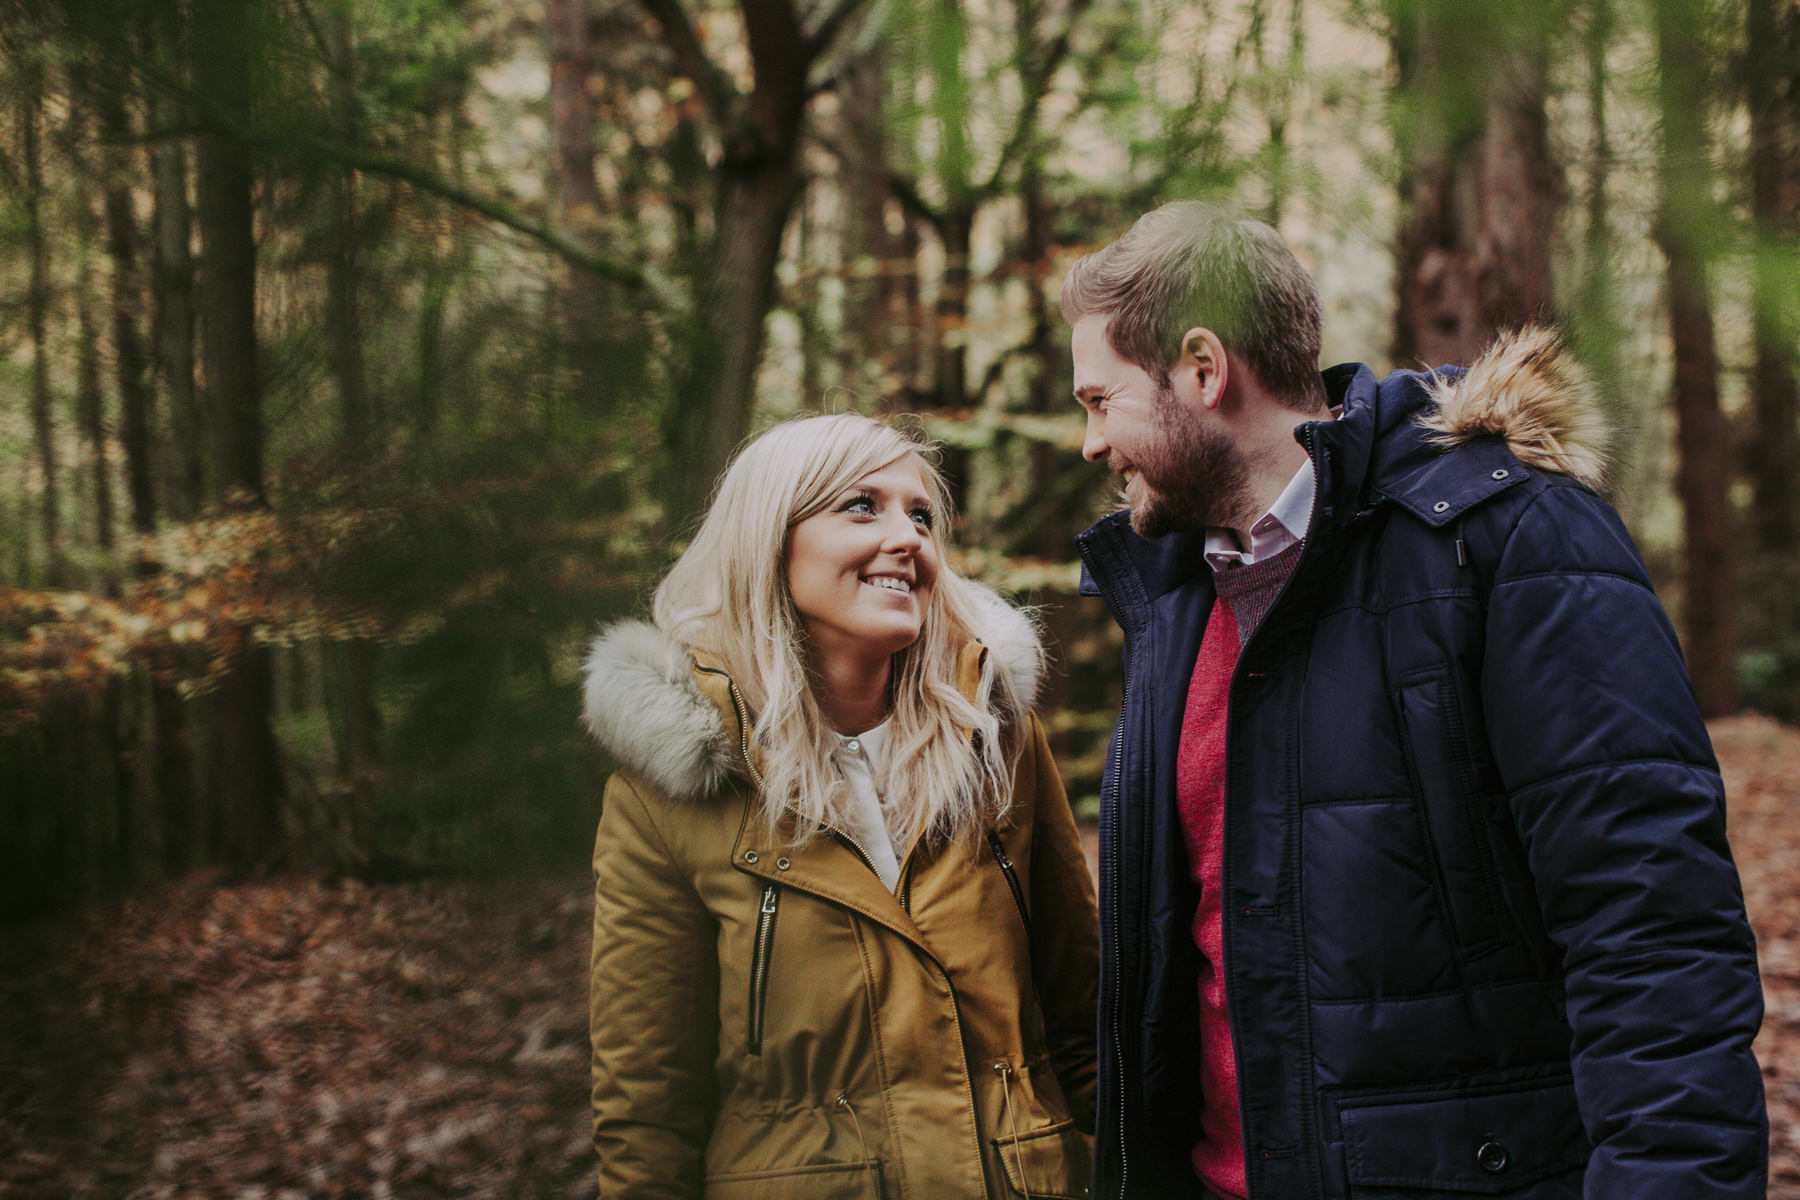 Emily & Phil | Newmillerdam engagement shoot 32